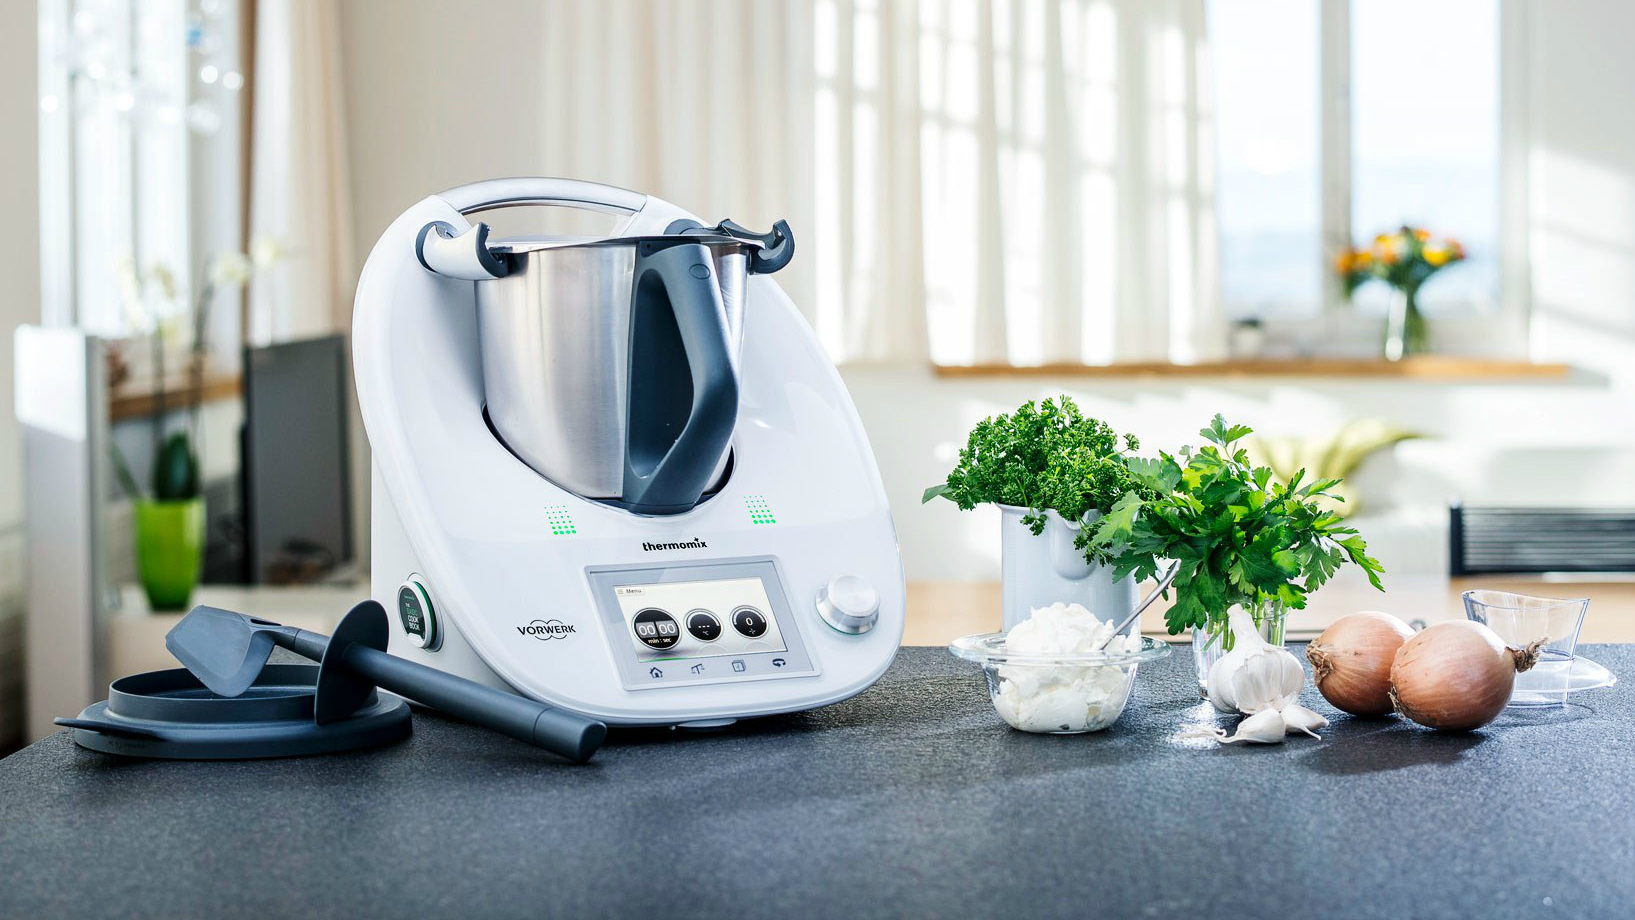 Thermomix Vorwerk S 1 450 Kitchen Appliance Is Coming To The Us